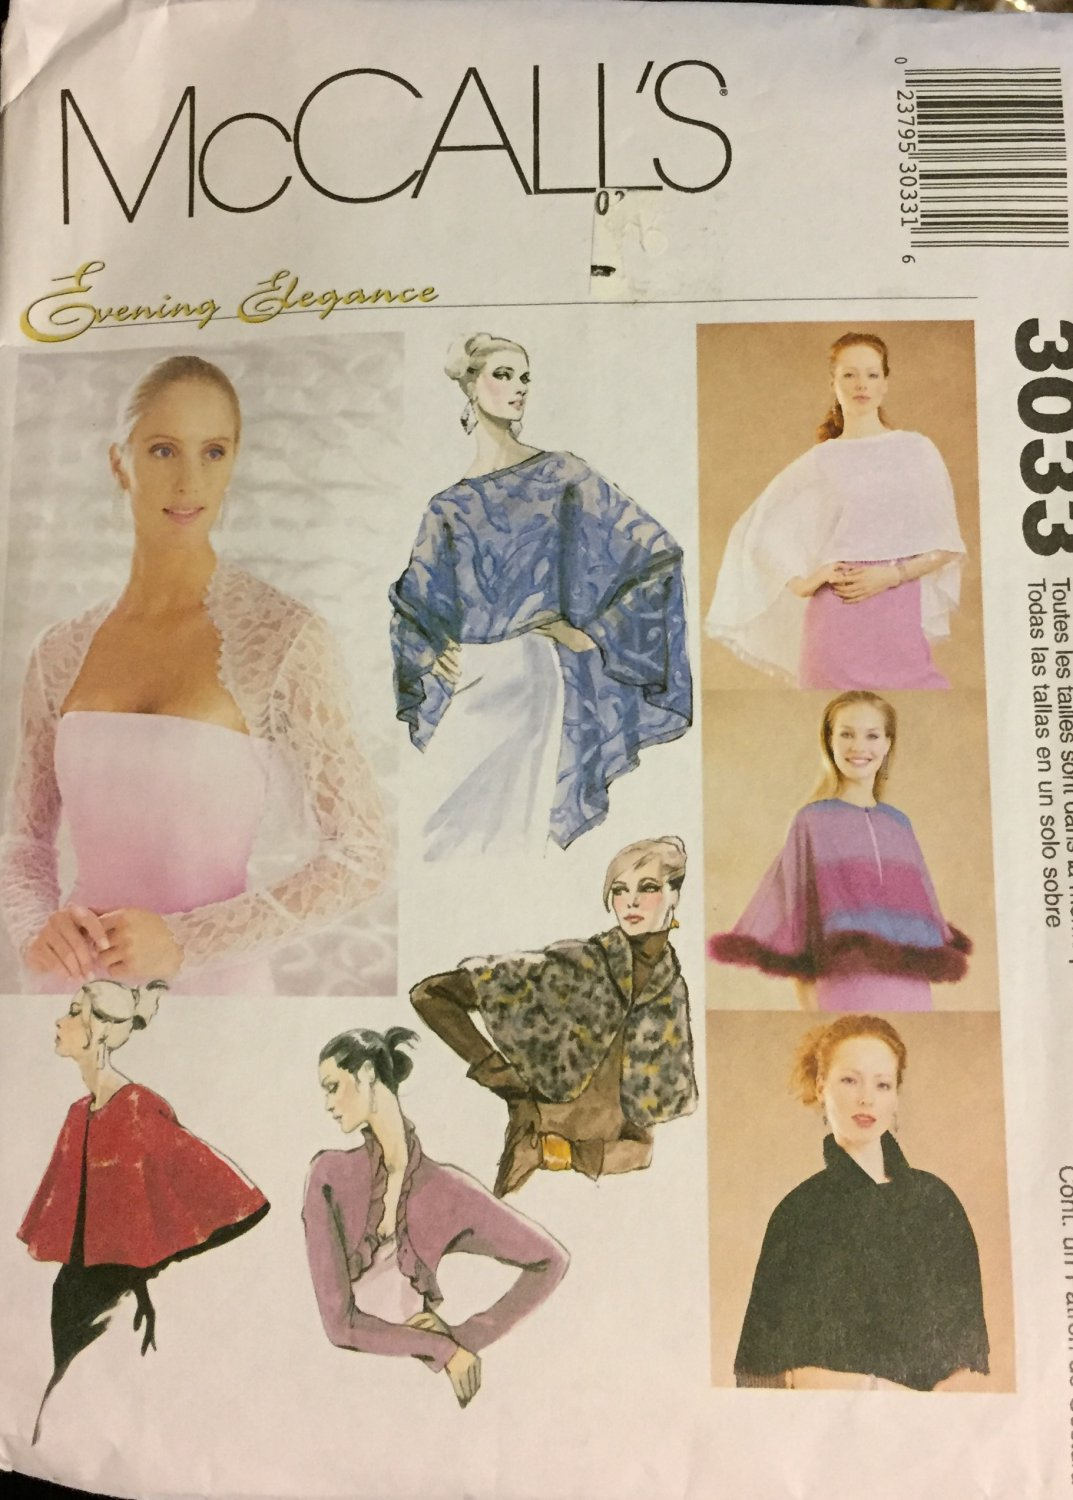 McCall's 3033 Evening elegance wraps capelets and shrugs for every occasion SOLD OUT!